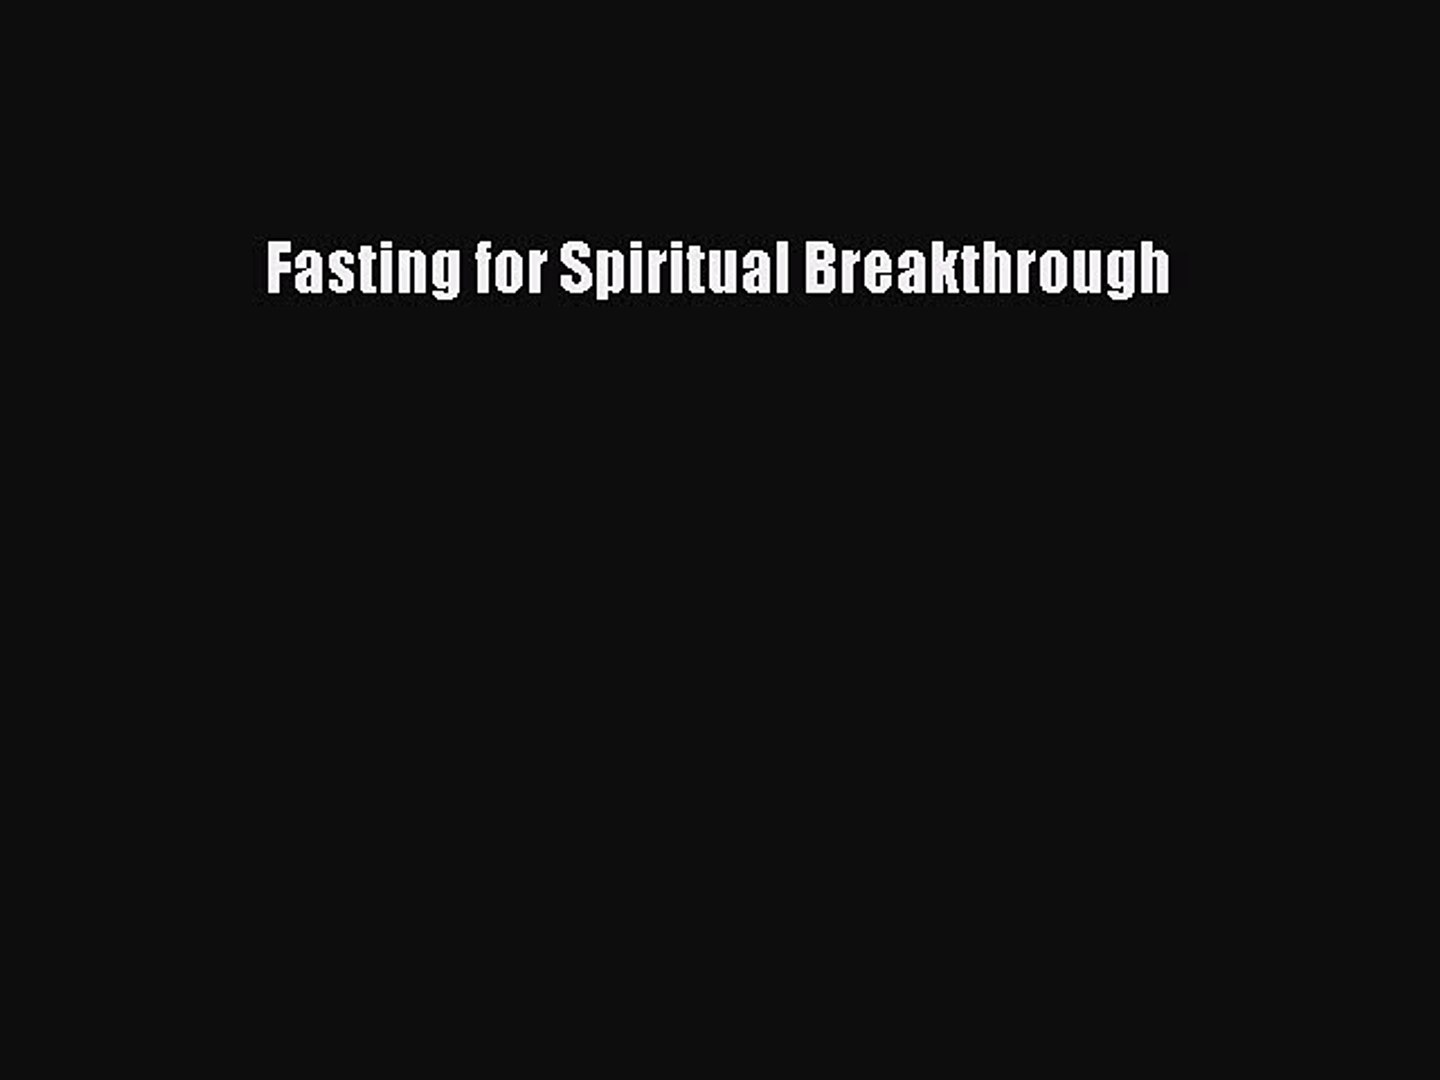 Read Fasting for Spiritual Breakthrough Ebook Free